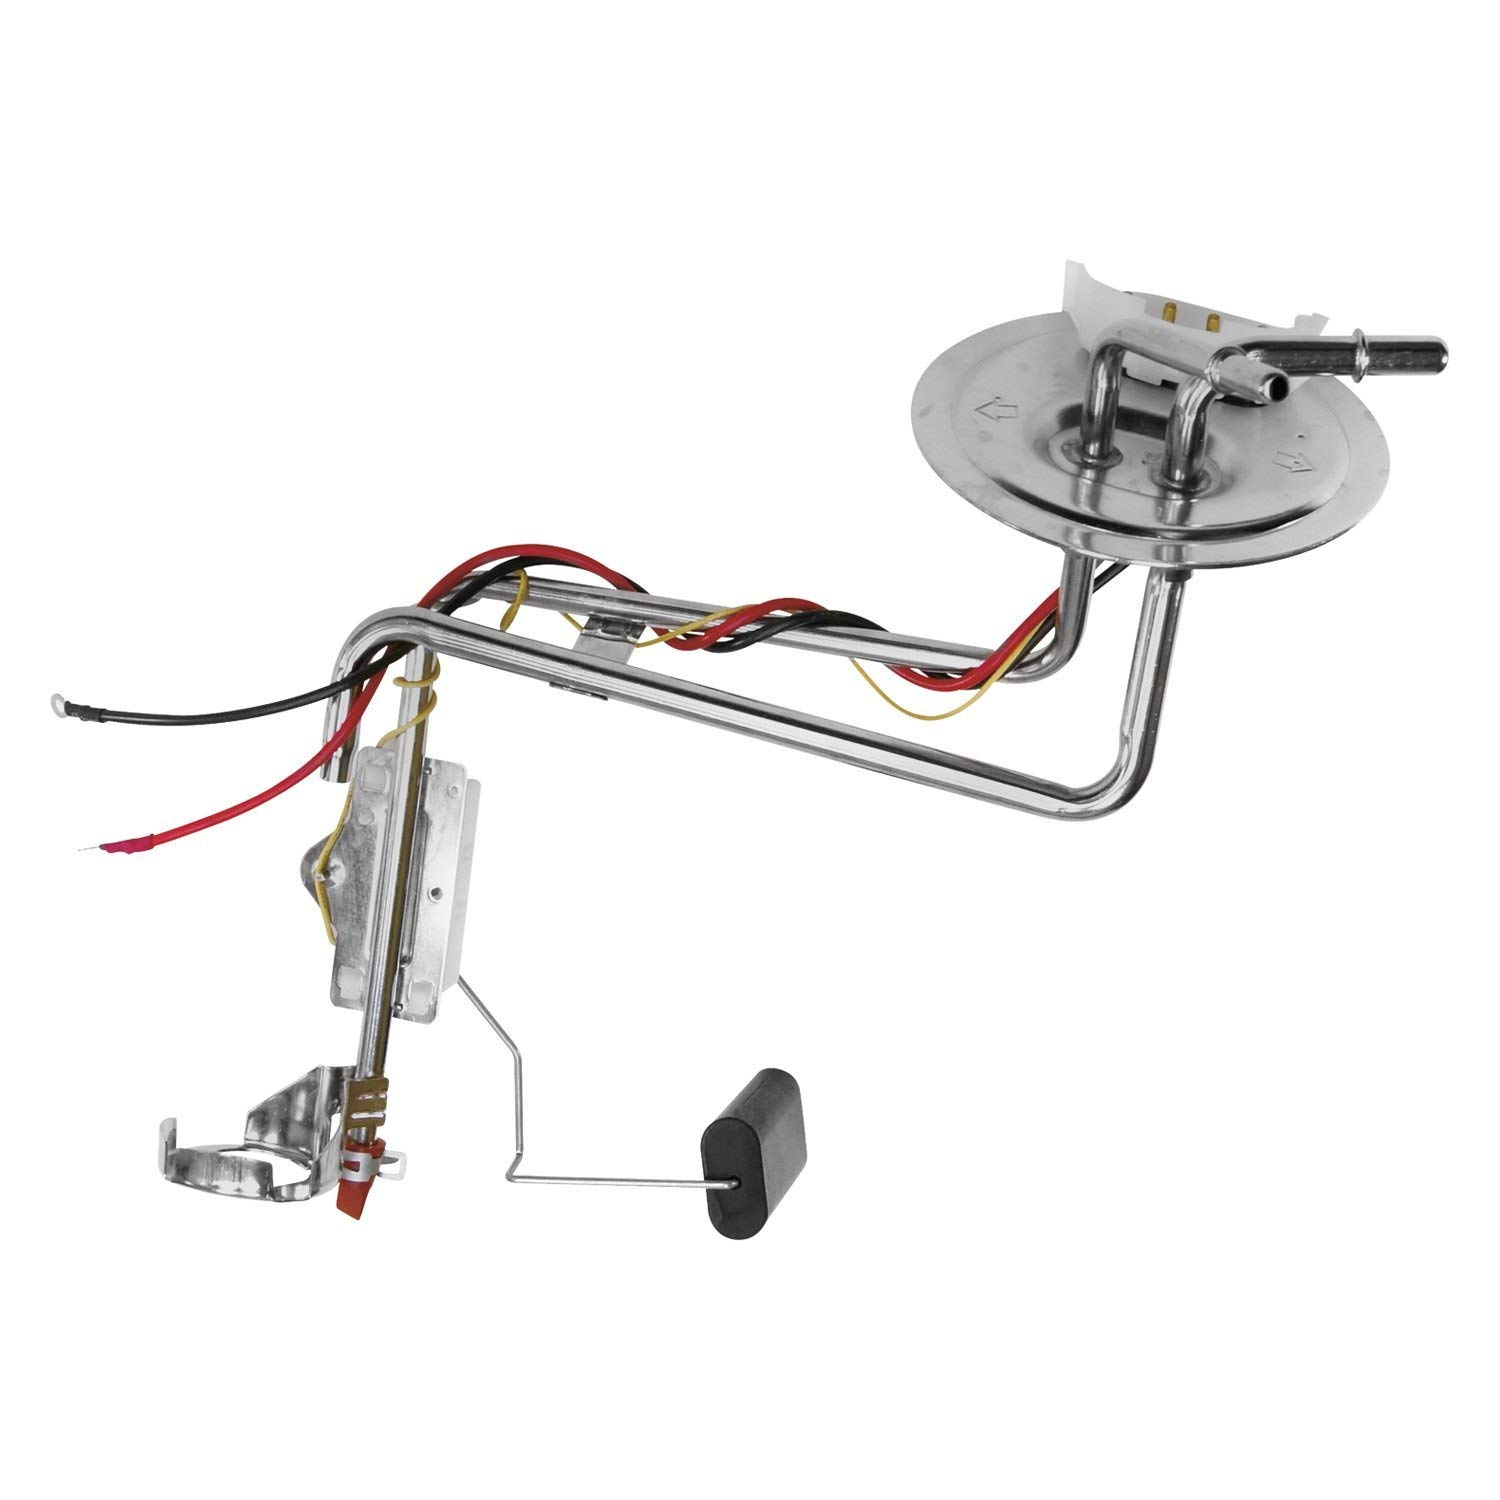 Replacement CPP Fuel Tank Sending Unit for 87-89 Ford F-150, F-250, F-350